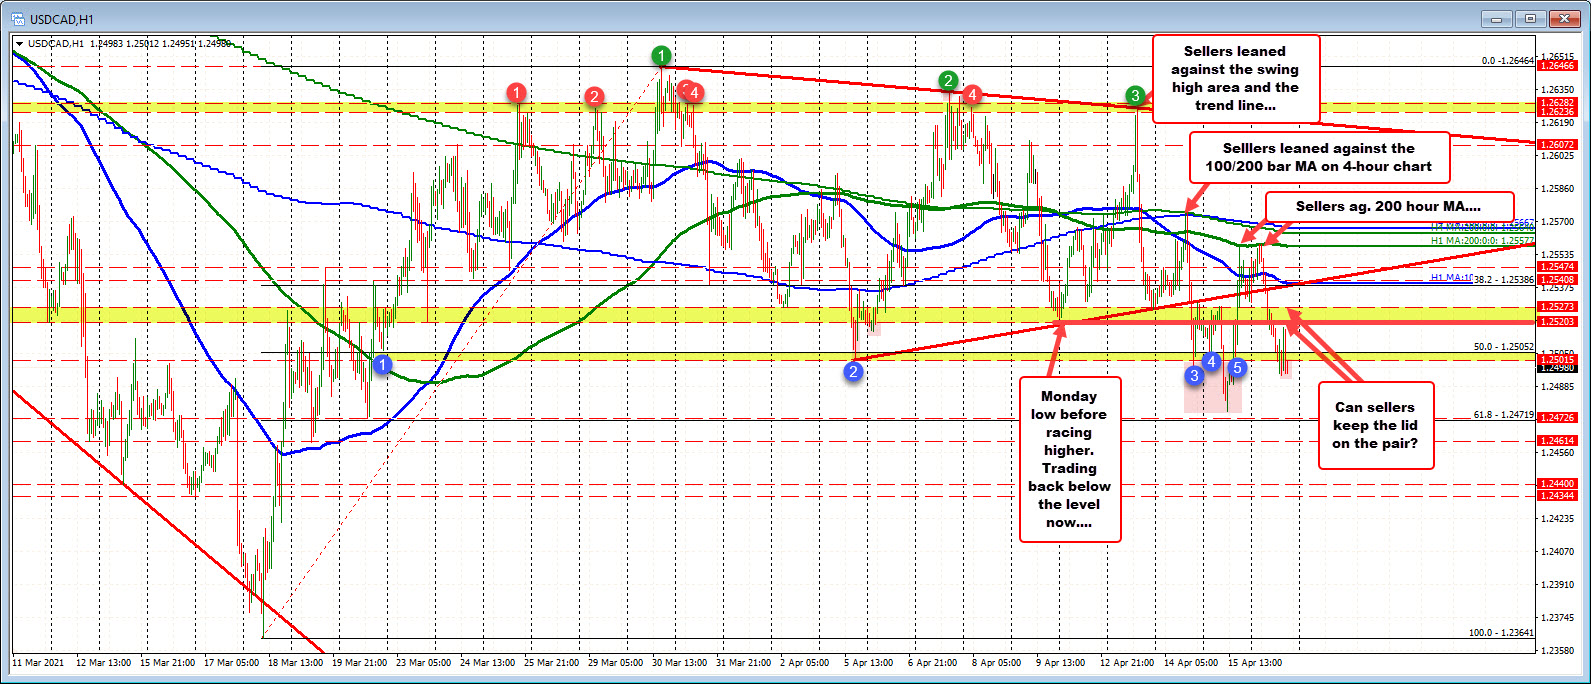 USDCAD reverses up run as the week comes to a close